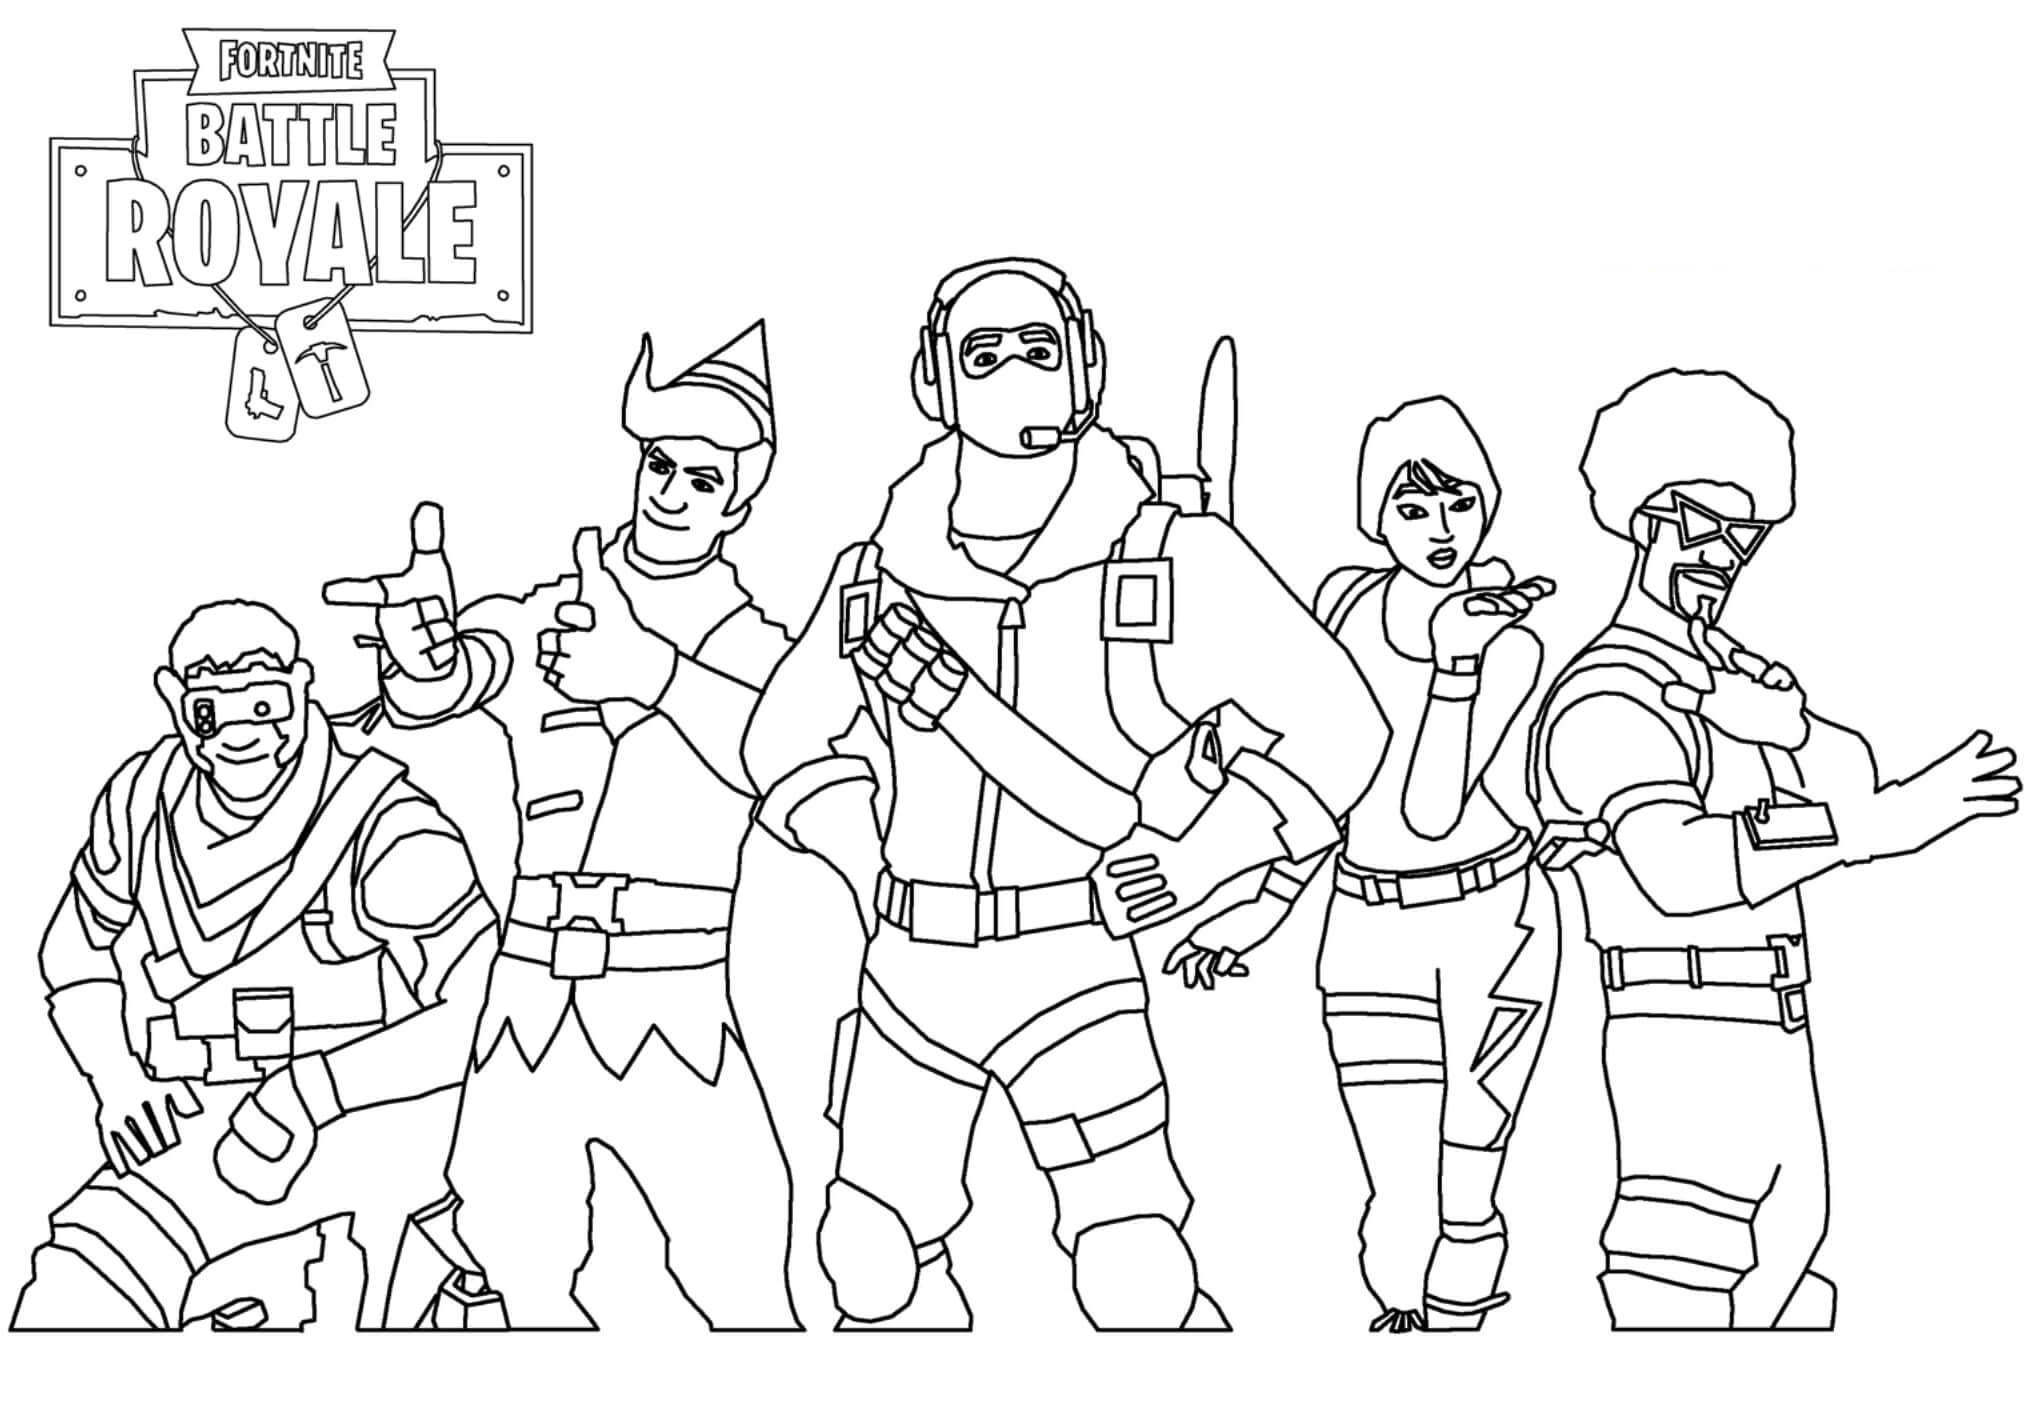 Free Easy Fortnite Skin Coloring Pages Skins Drawing Pictures printable